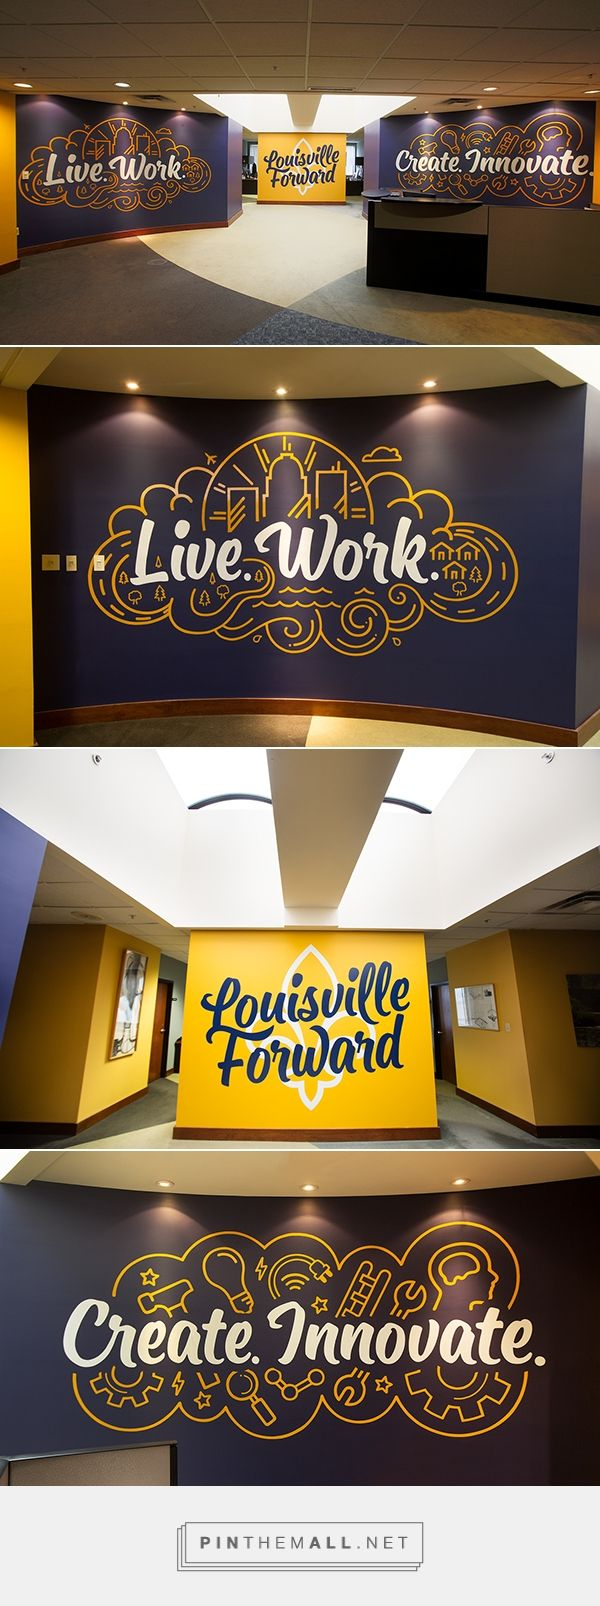 Louisville Forward Murals by Bryan Todd                                                                                                                                                                                 More